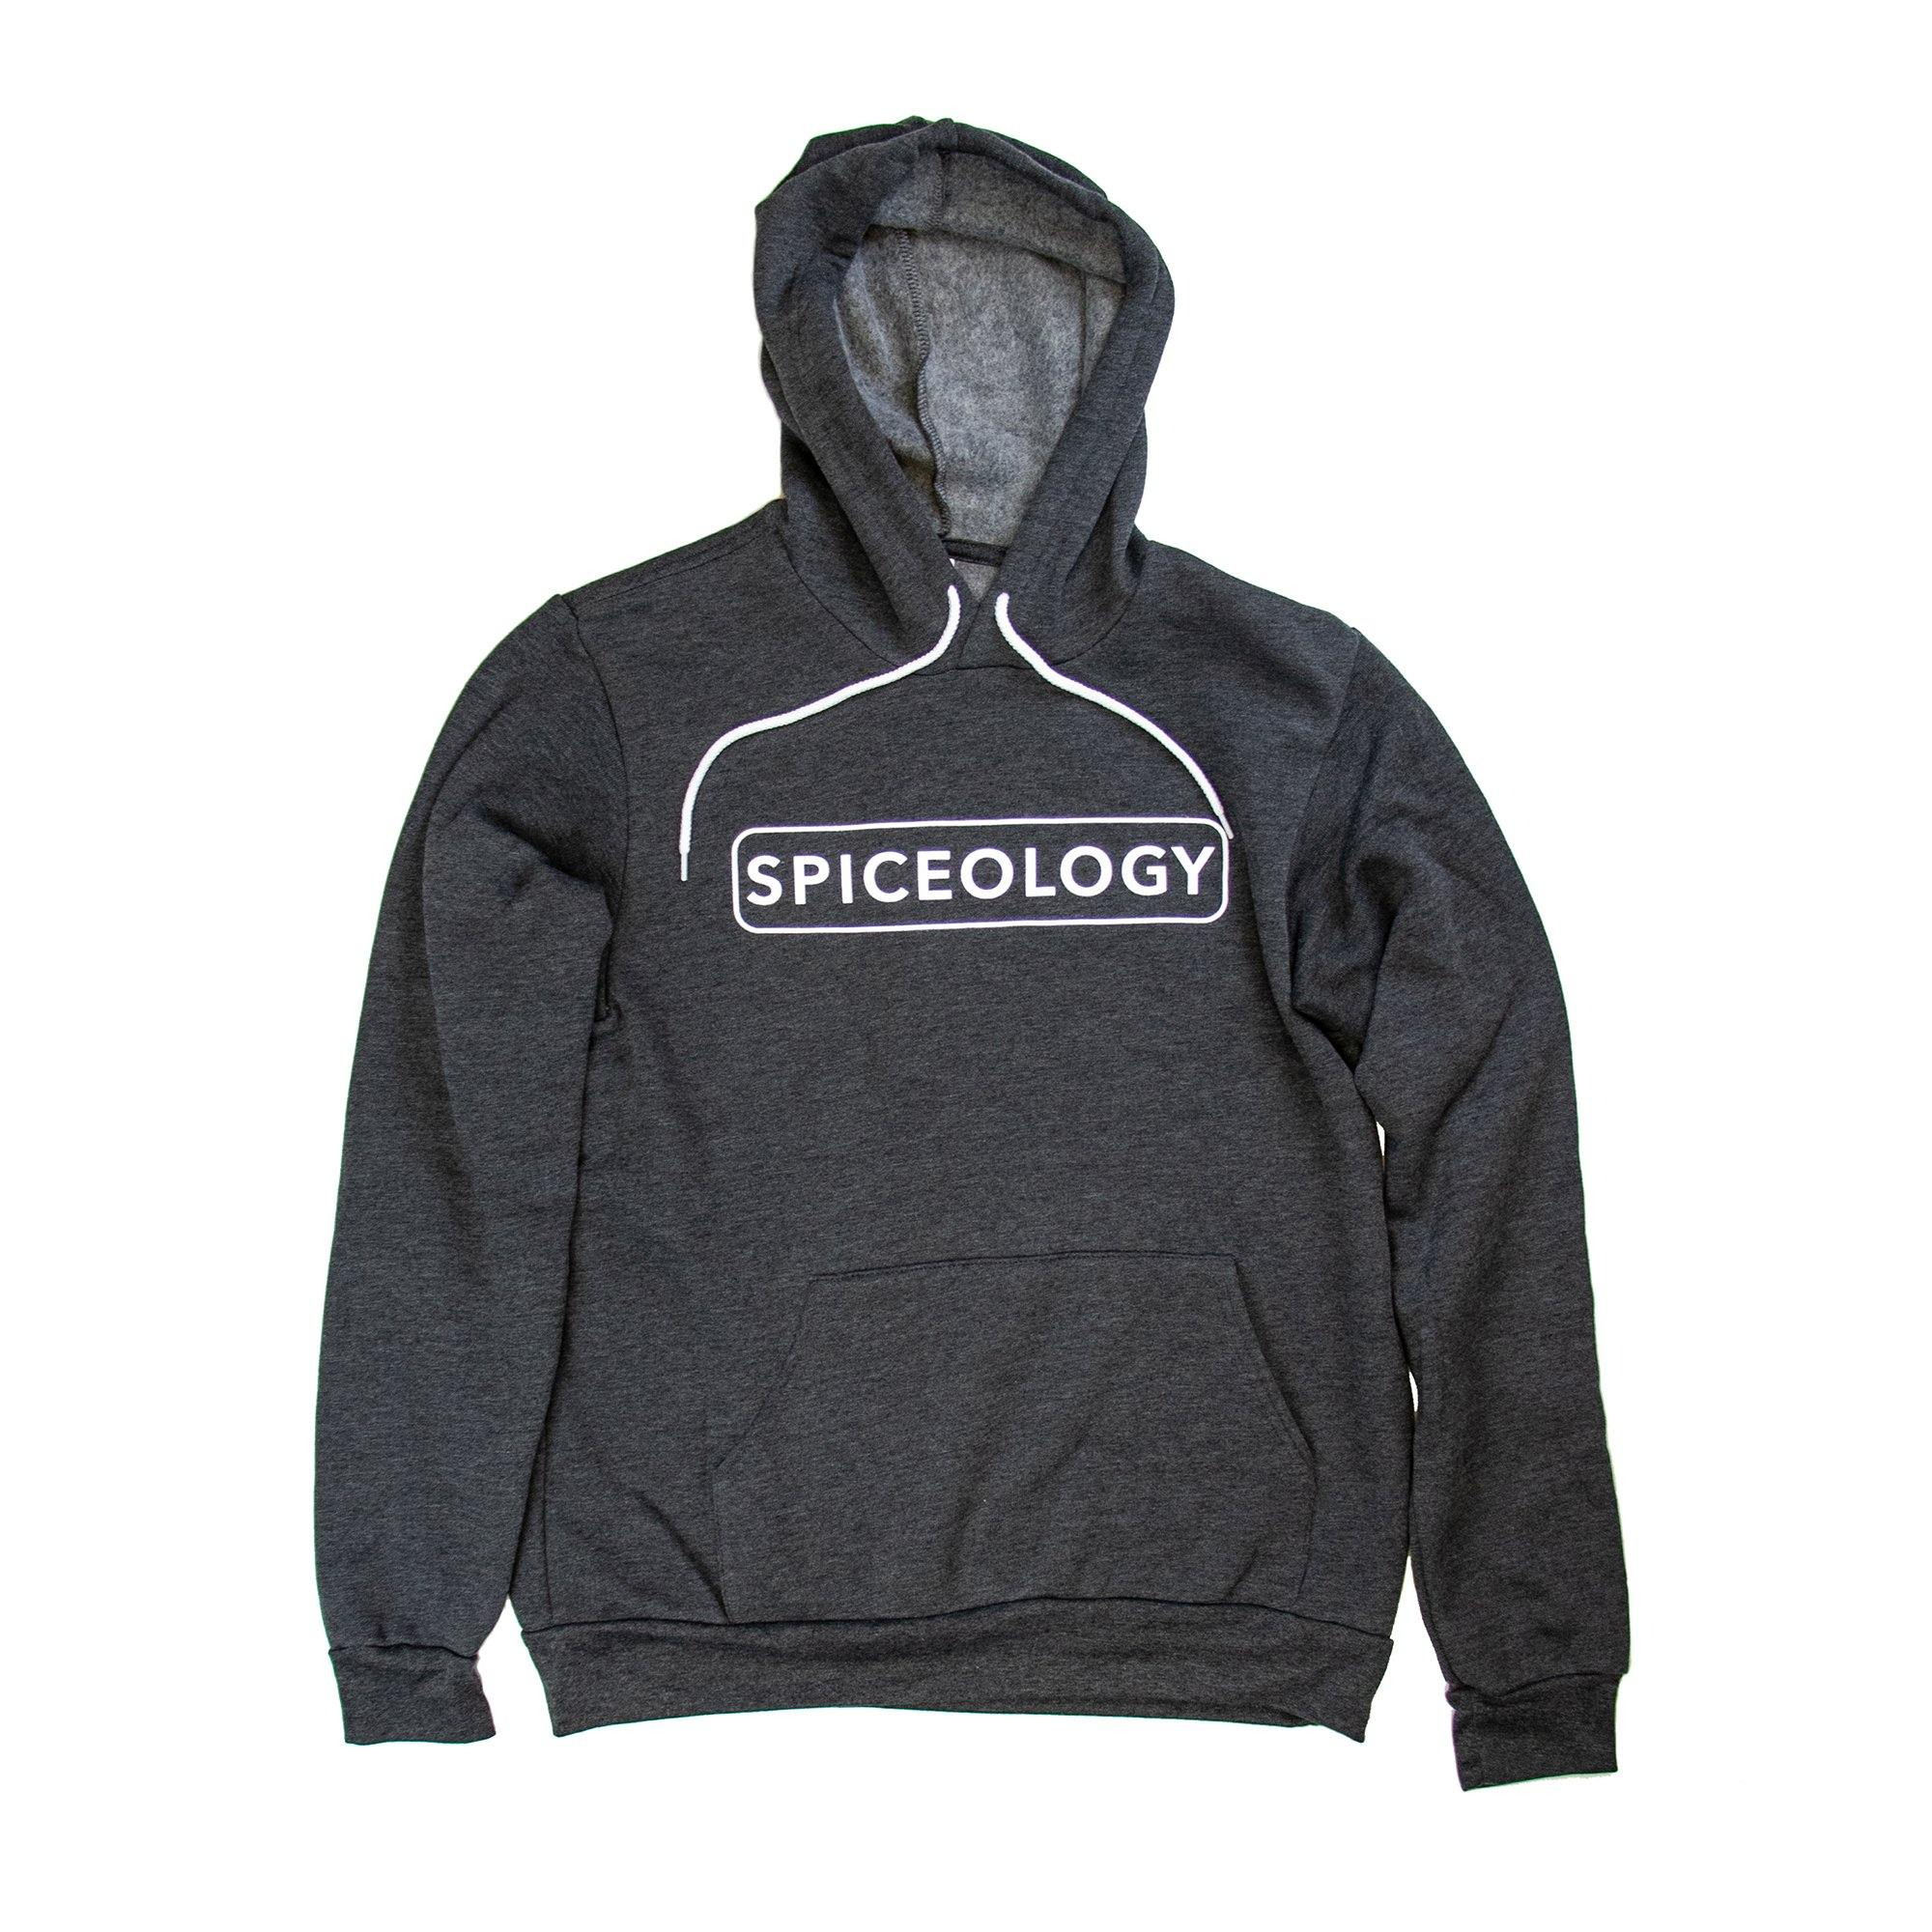 Spiceology Hoodie Rewards Spiceology S